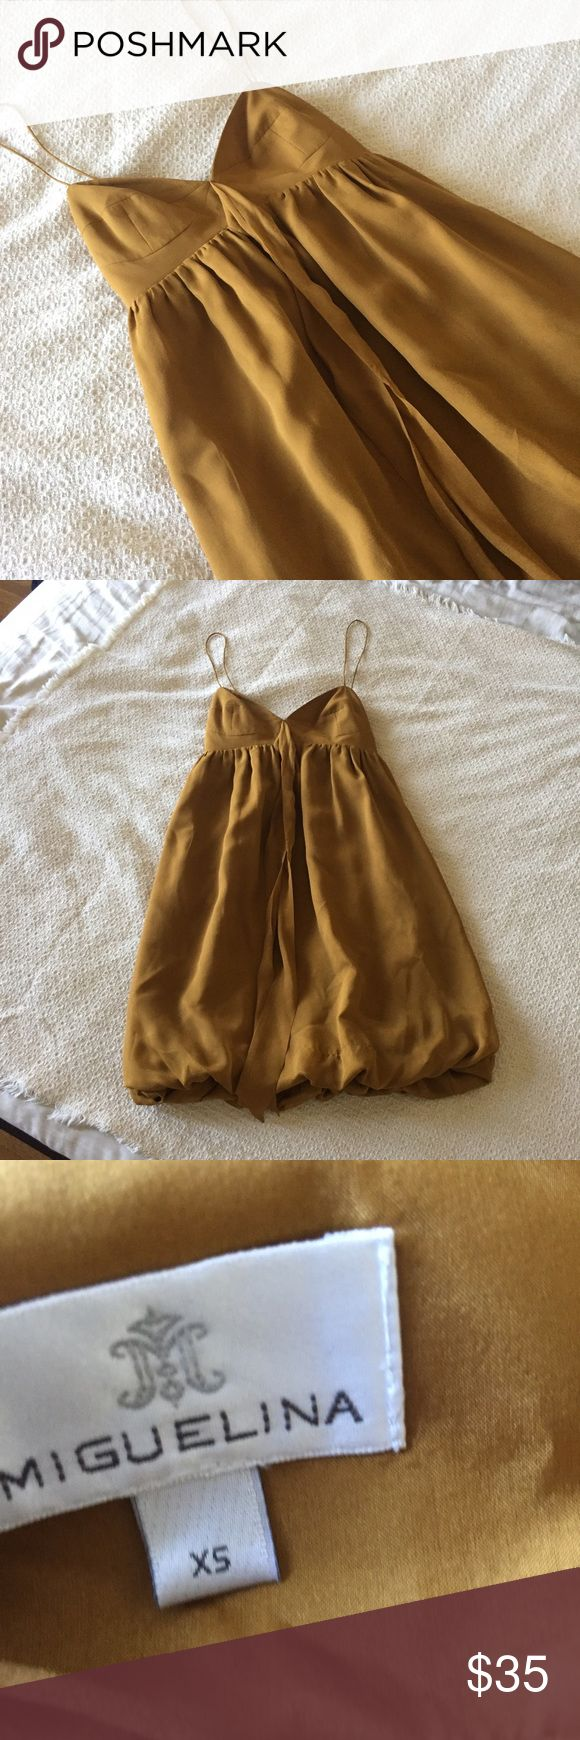 Miguelina gold silk tank top Miguelina gold silk tank top Miguelina  Tops Tank Tops